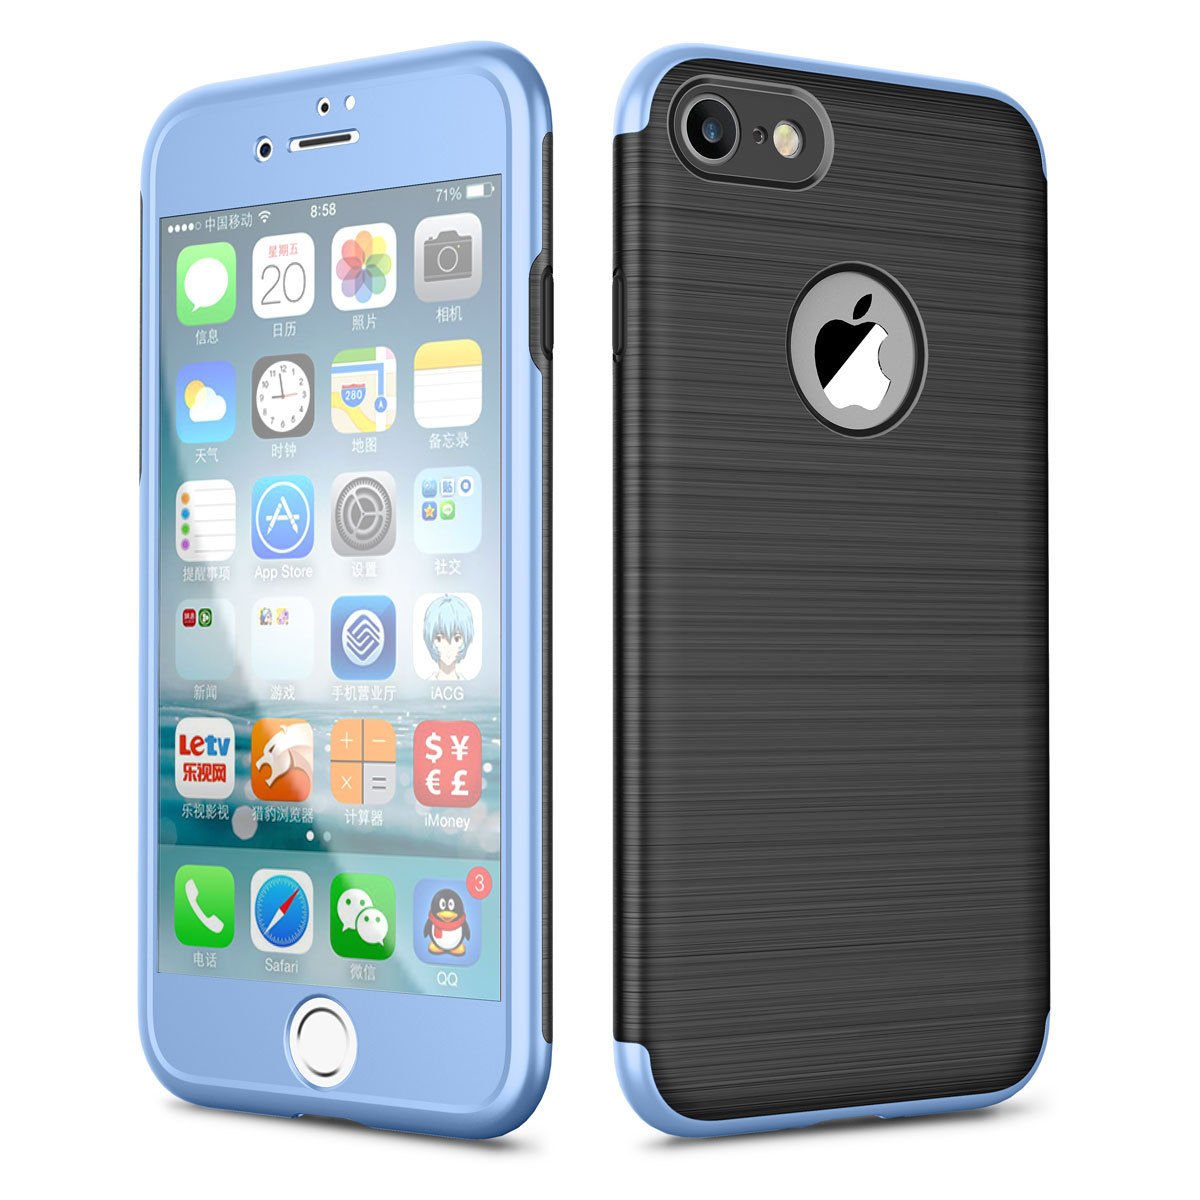 1e45660be8fae9 Amazon.com: iPhone 6 Case, Purpplex Luxury Ultra Thin Brushed Hybrid Rugged Shockproof  360 Protection Case Cover + Tempered Glass for Apple iPhone 6 - Blue: ...